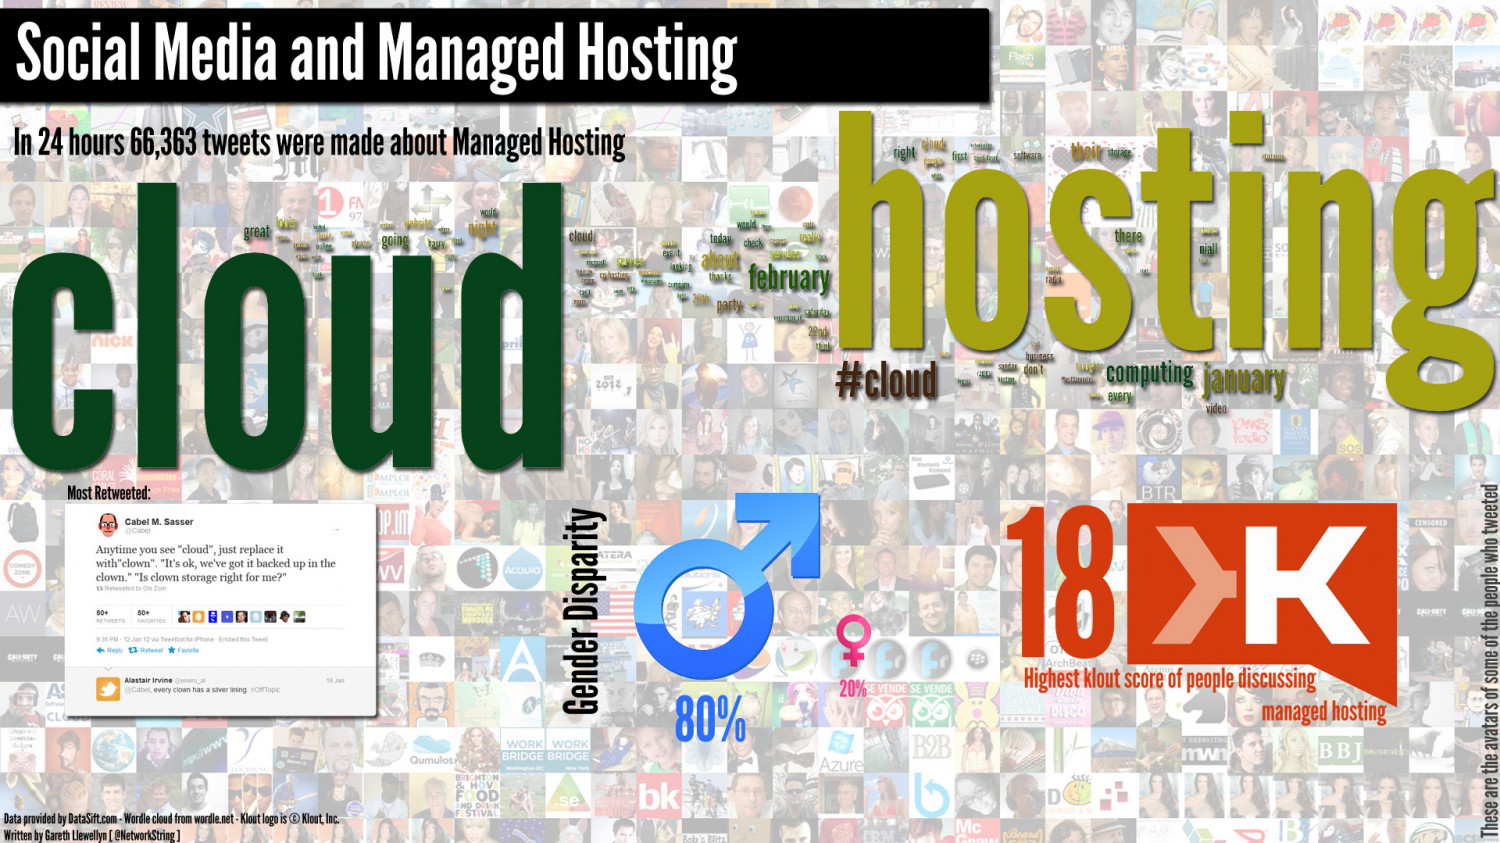 Managed Hosting in Social Media Infographic